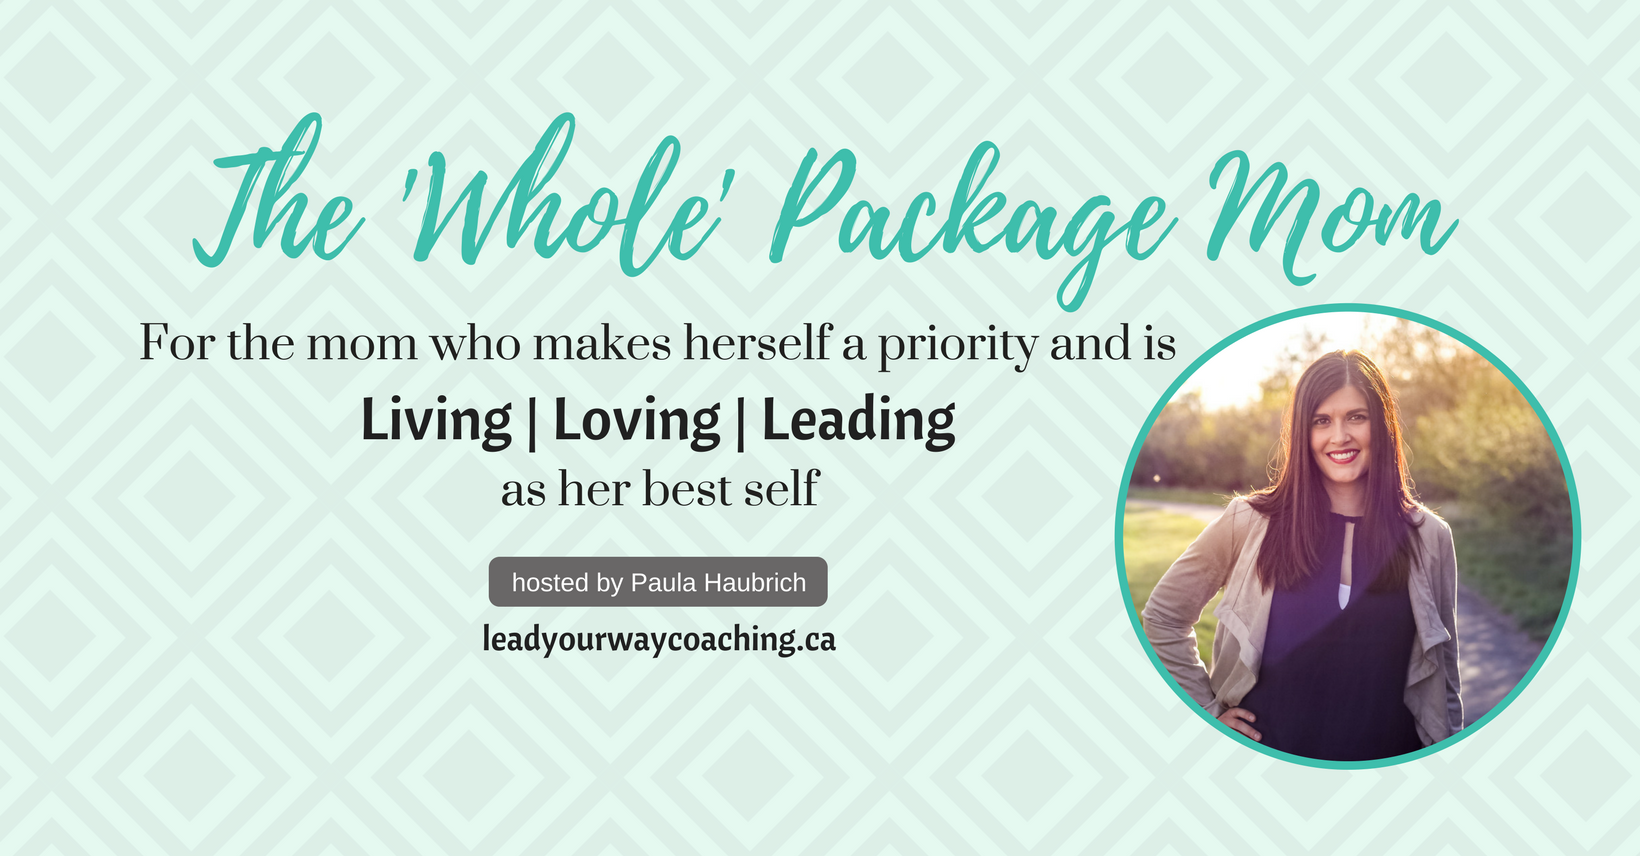 CLICK THE IMAGE TO JOIN A COMMUNITY OF AMAZING WOMEN WHO ARE JUST LIKE YOU!